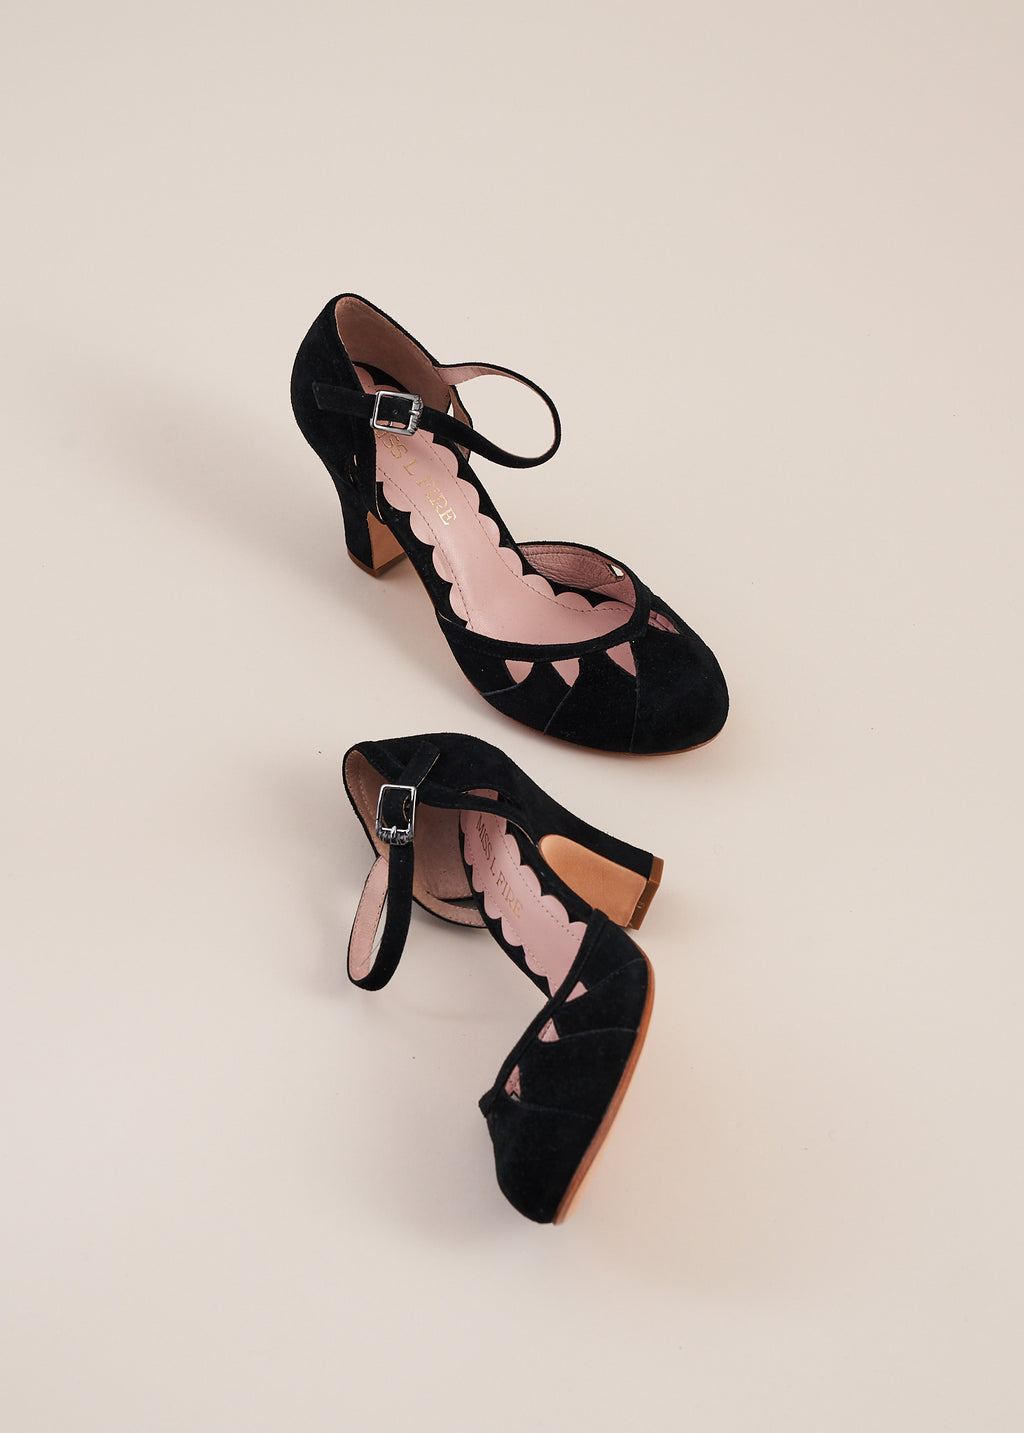 Lucie black suede multi panelled bar shoe by Miss L Fire. Vintage inspired, ethically produced.